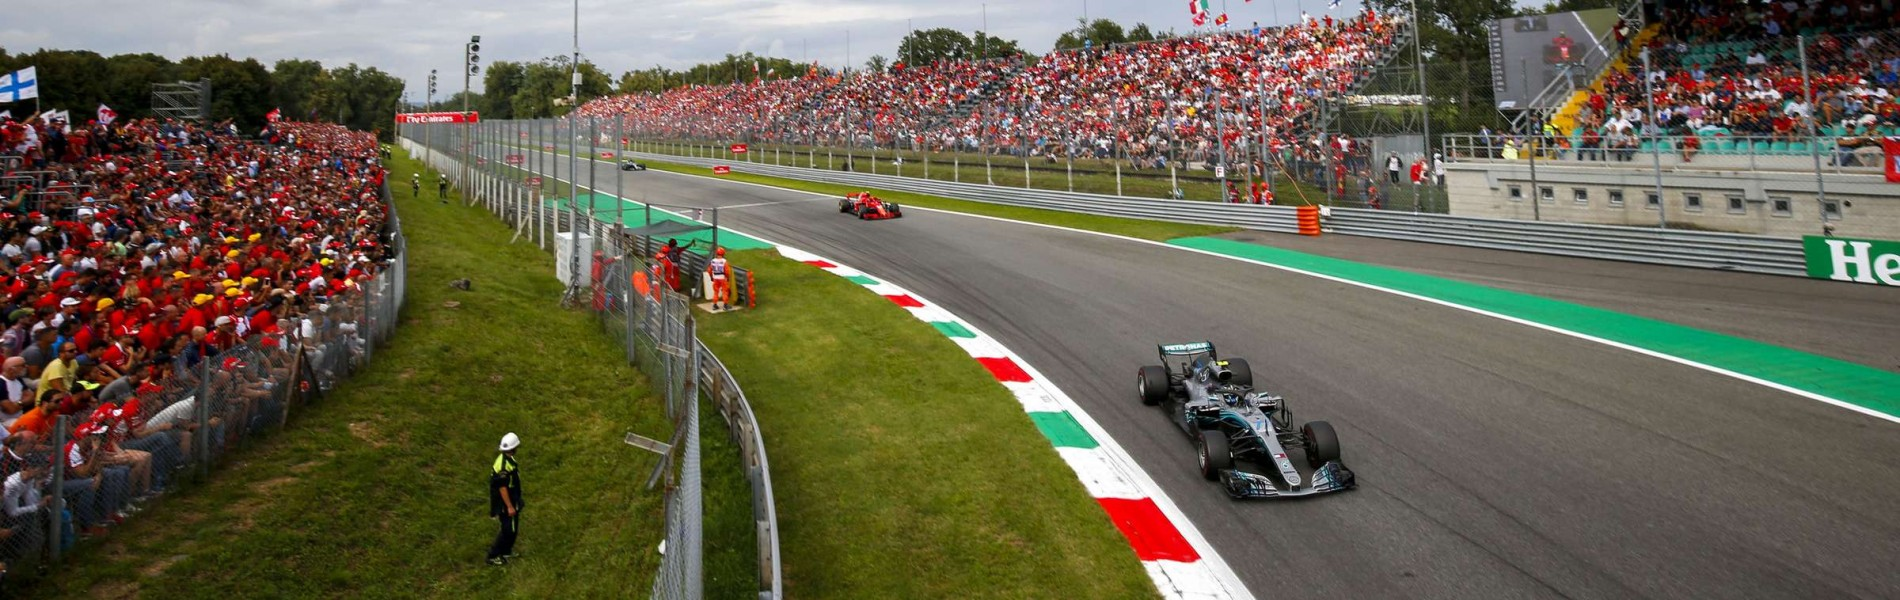 Sunday images from the 2018 Italian Grand Prix